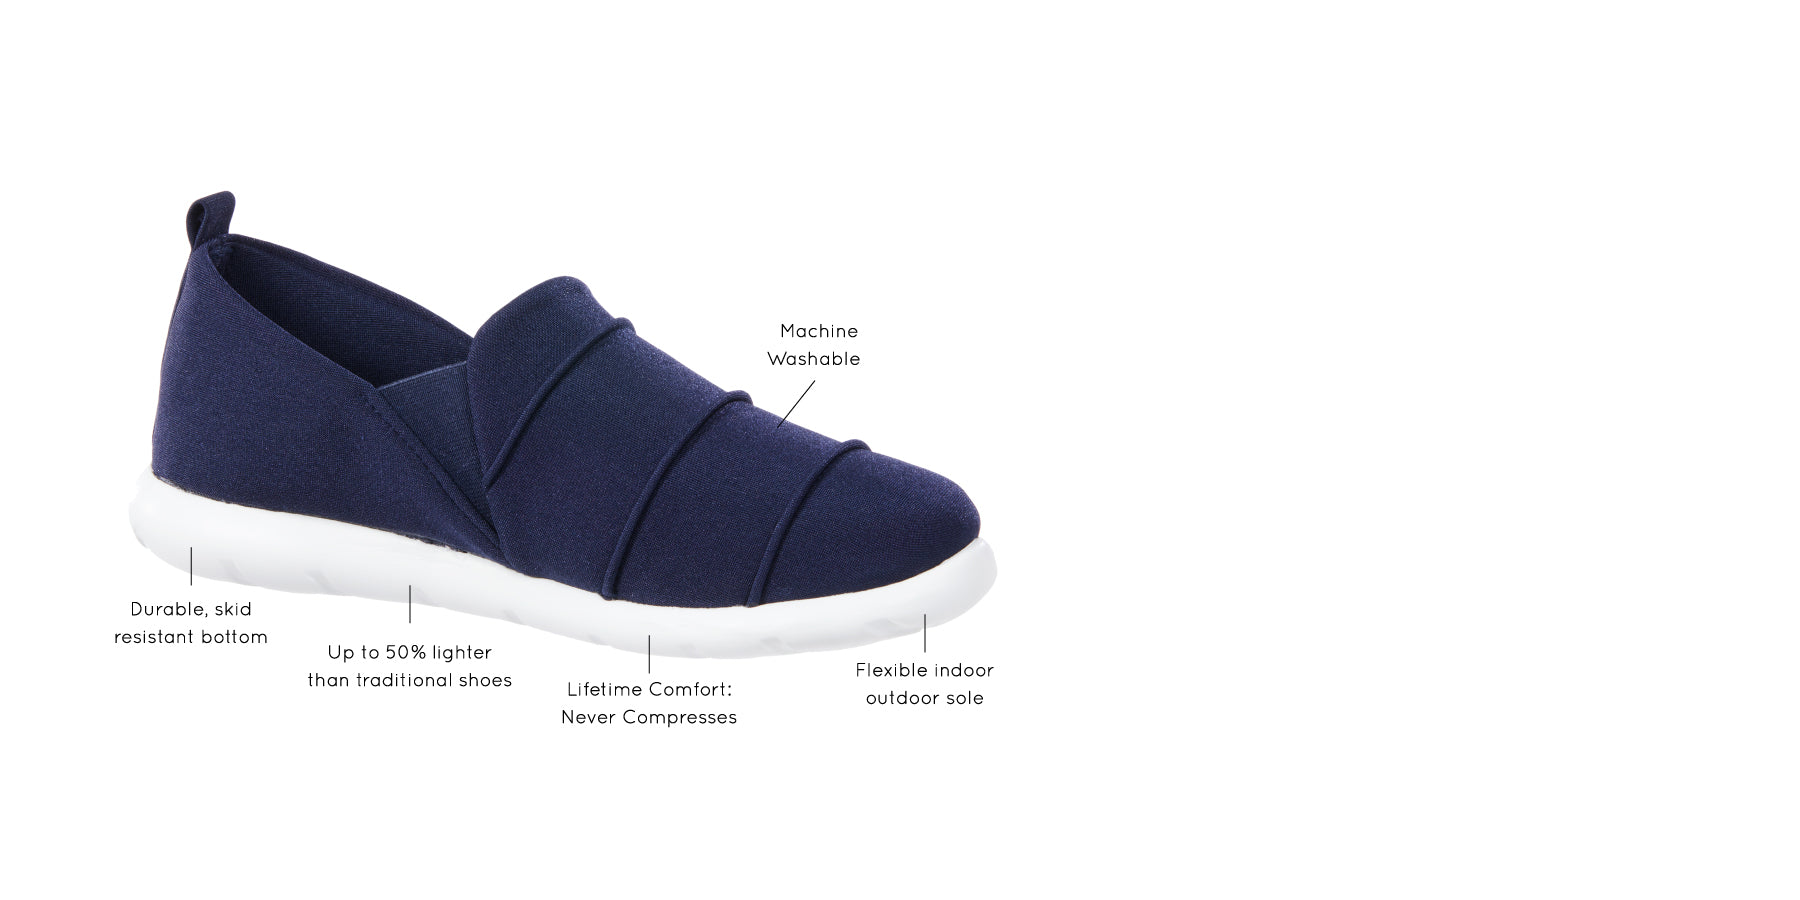 Navy Blue zenz showing call outs about the slip-on